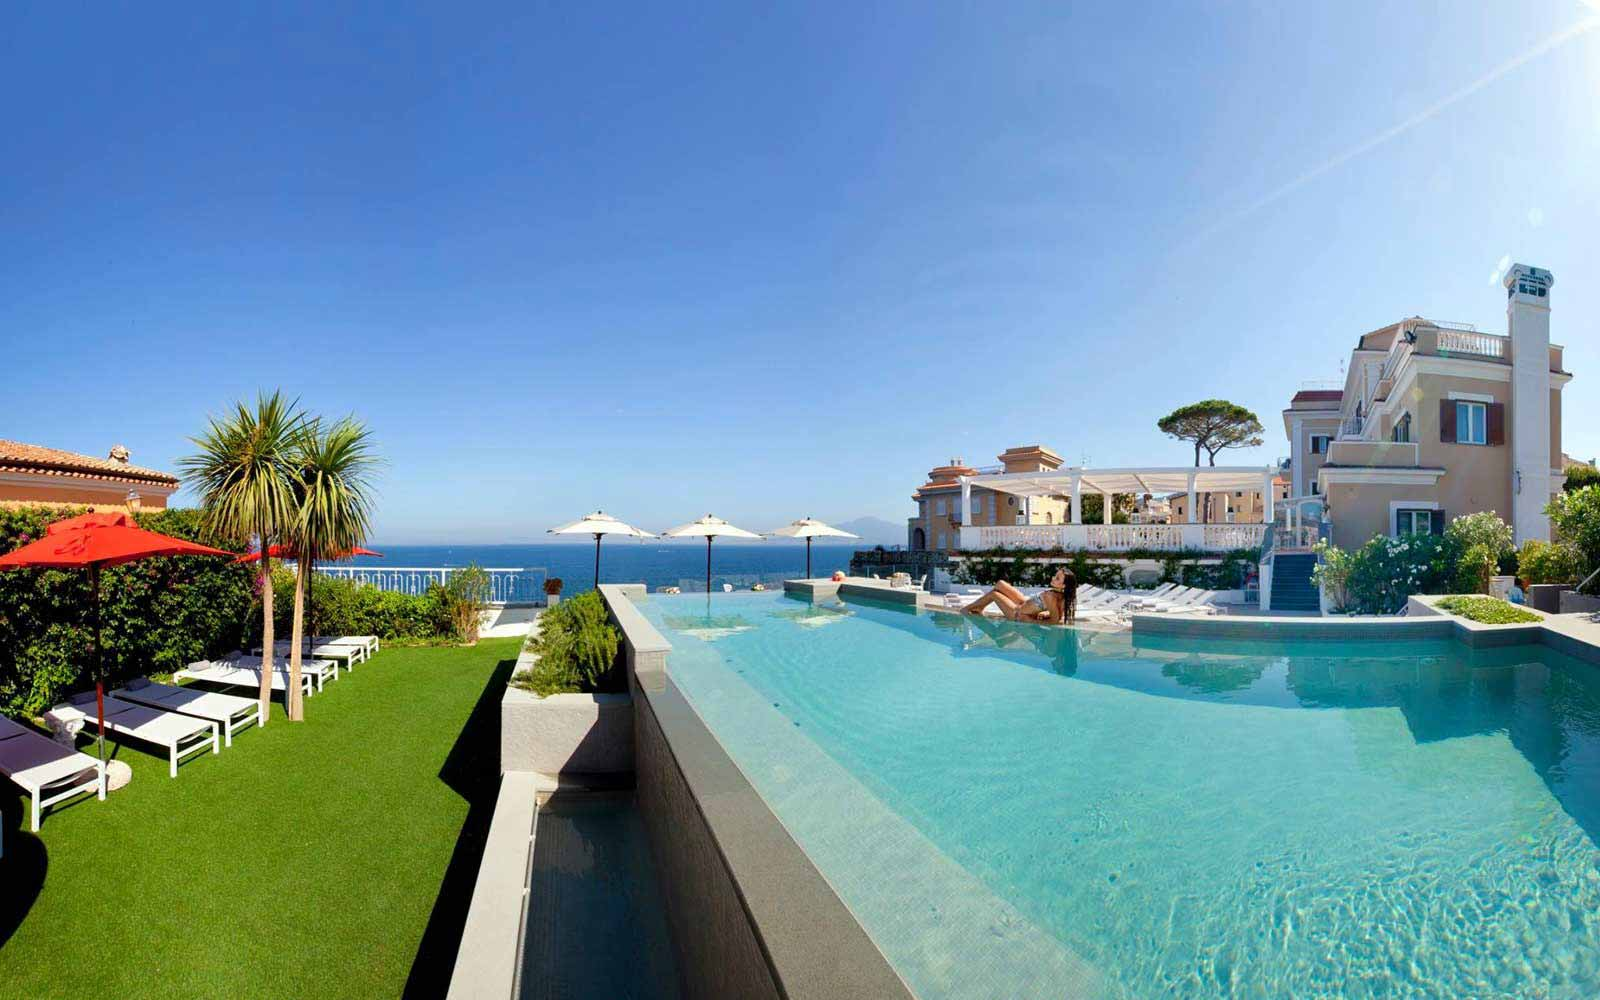 Infinity pool at Hotel Corallo